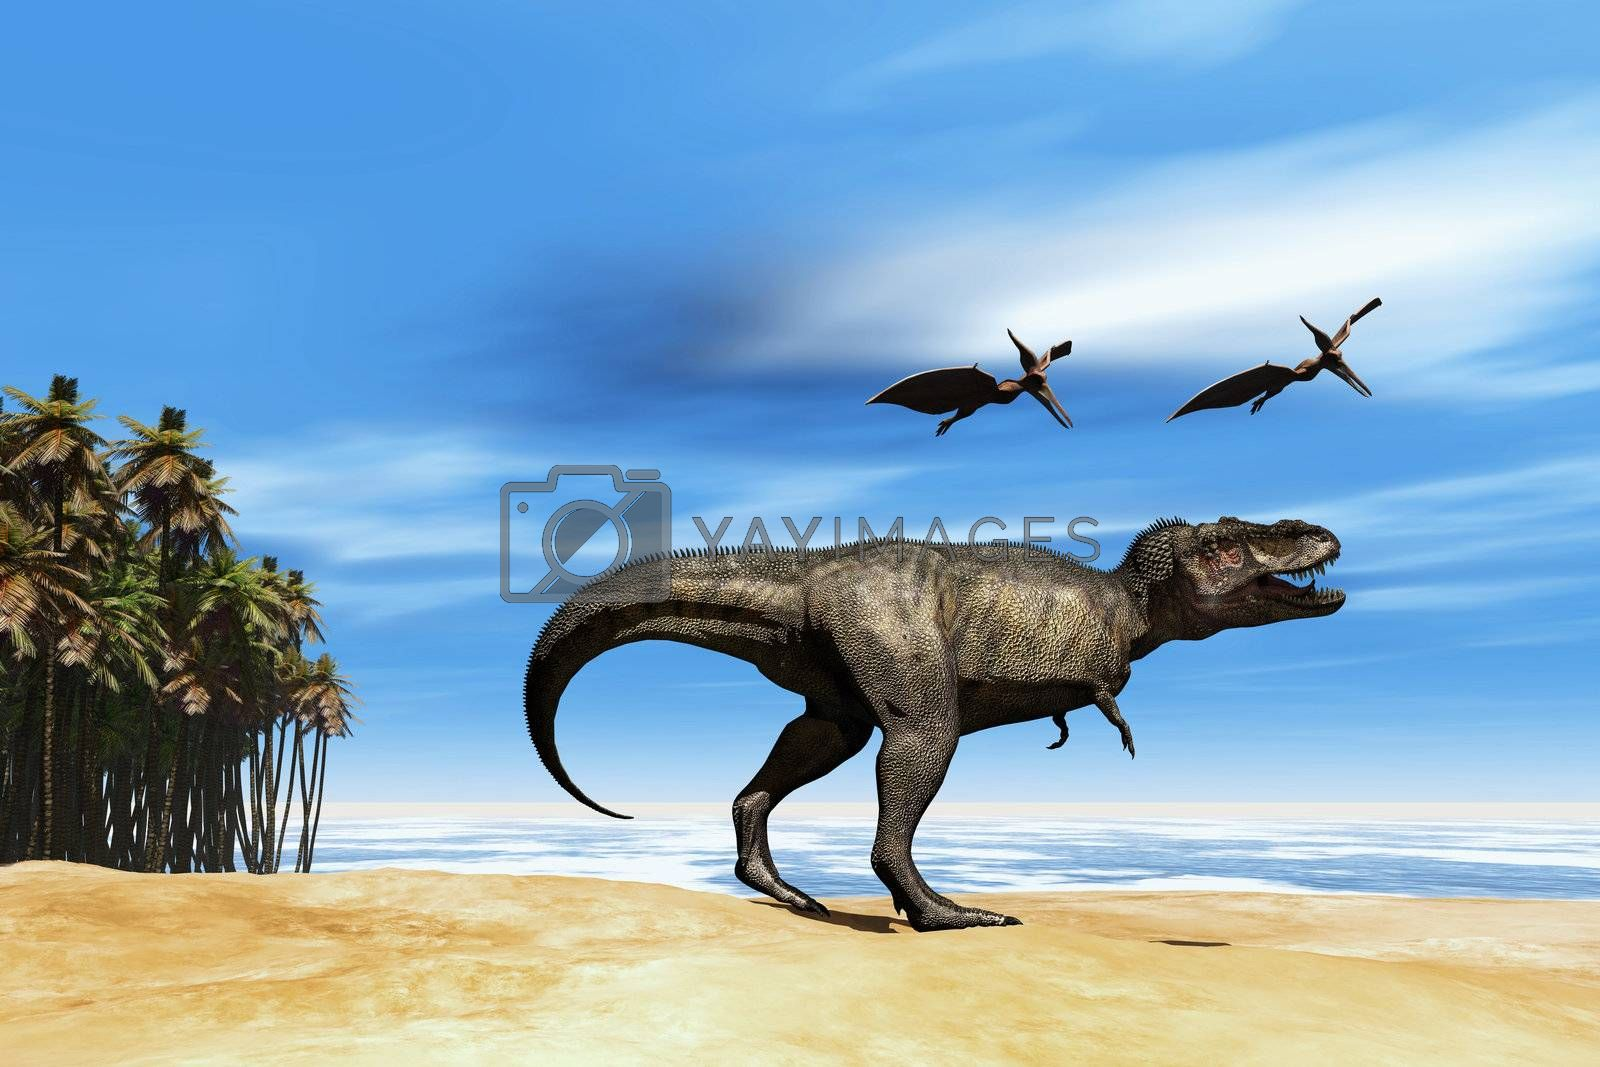 Two Pterodactyl flying dinosaurs fly over beastly Tyrannosaurus Rex at the seashore in prehistoric times.